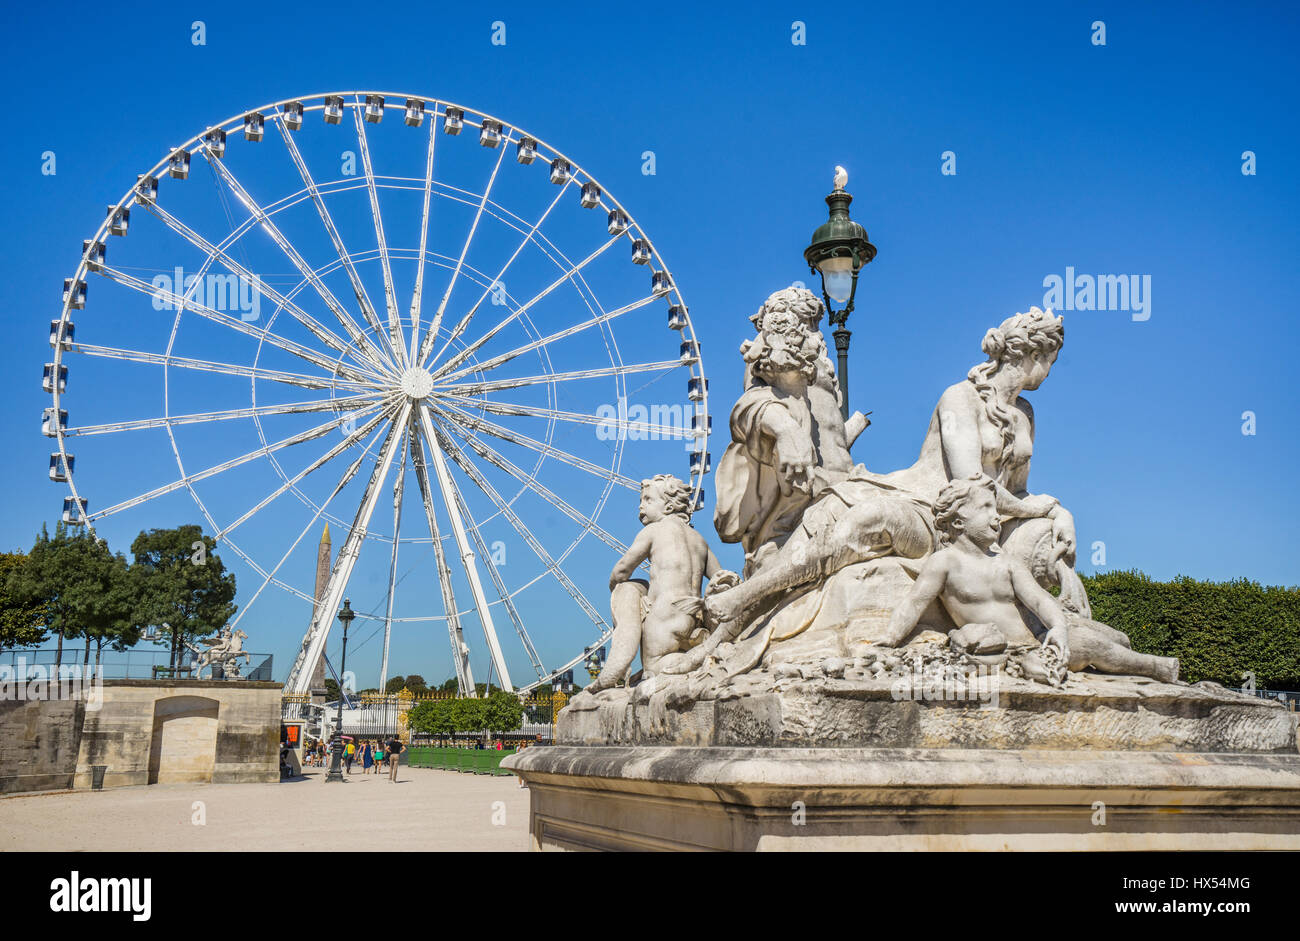 France, Paris, classic statuary at the Tuileries Gardens against the backdrop of the Grand Carousel Ferries Wheel - Stock Image